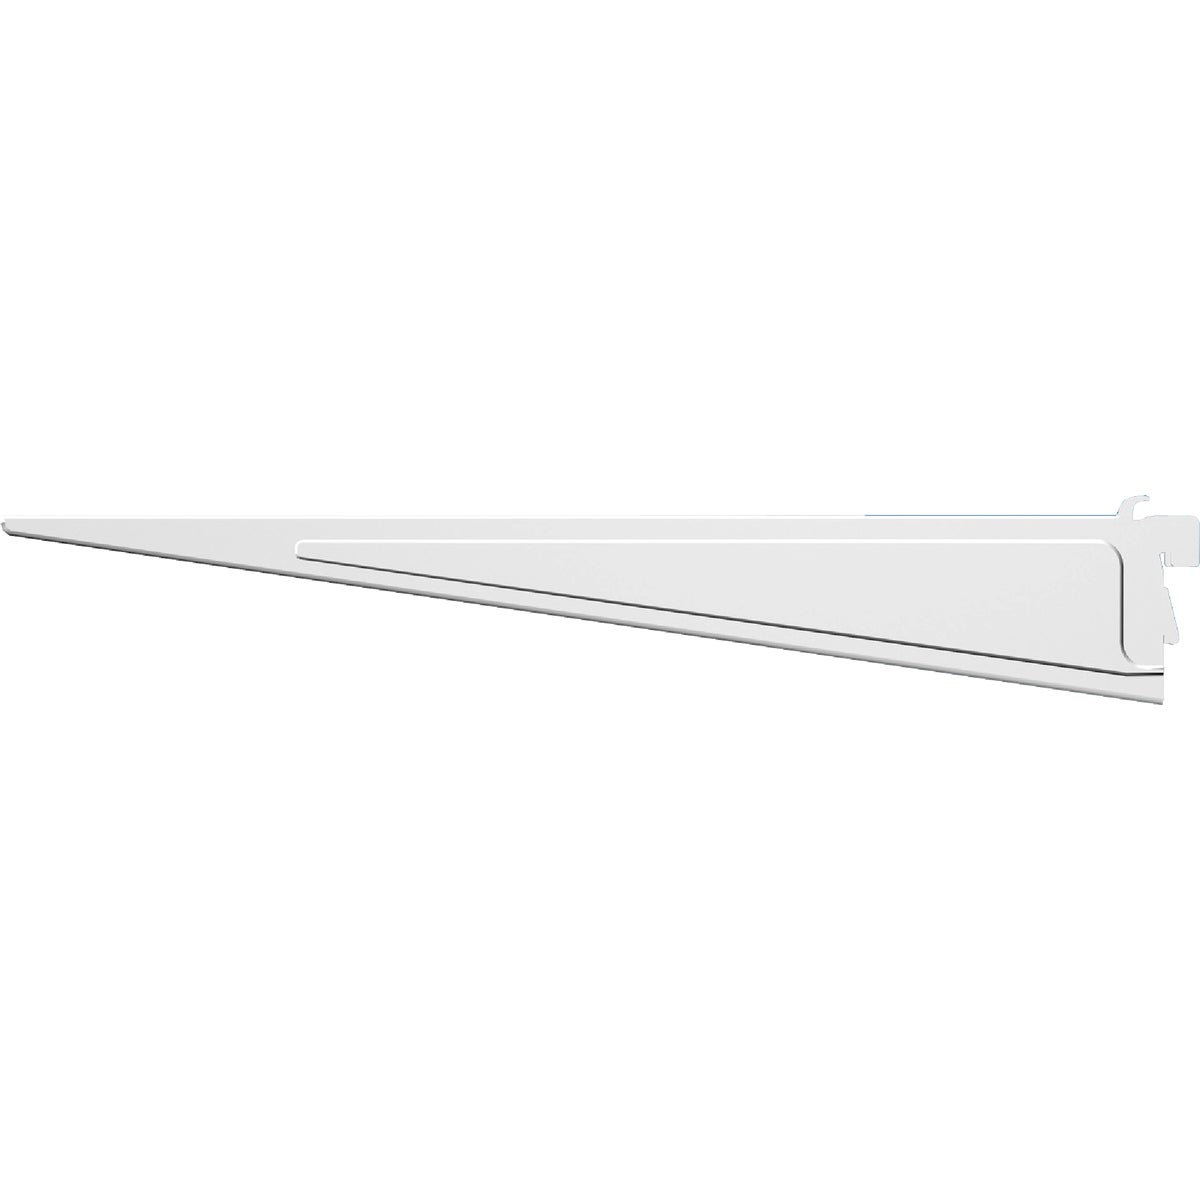 "16"" CLOSET SHELF BRACKET"